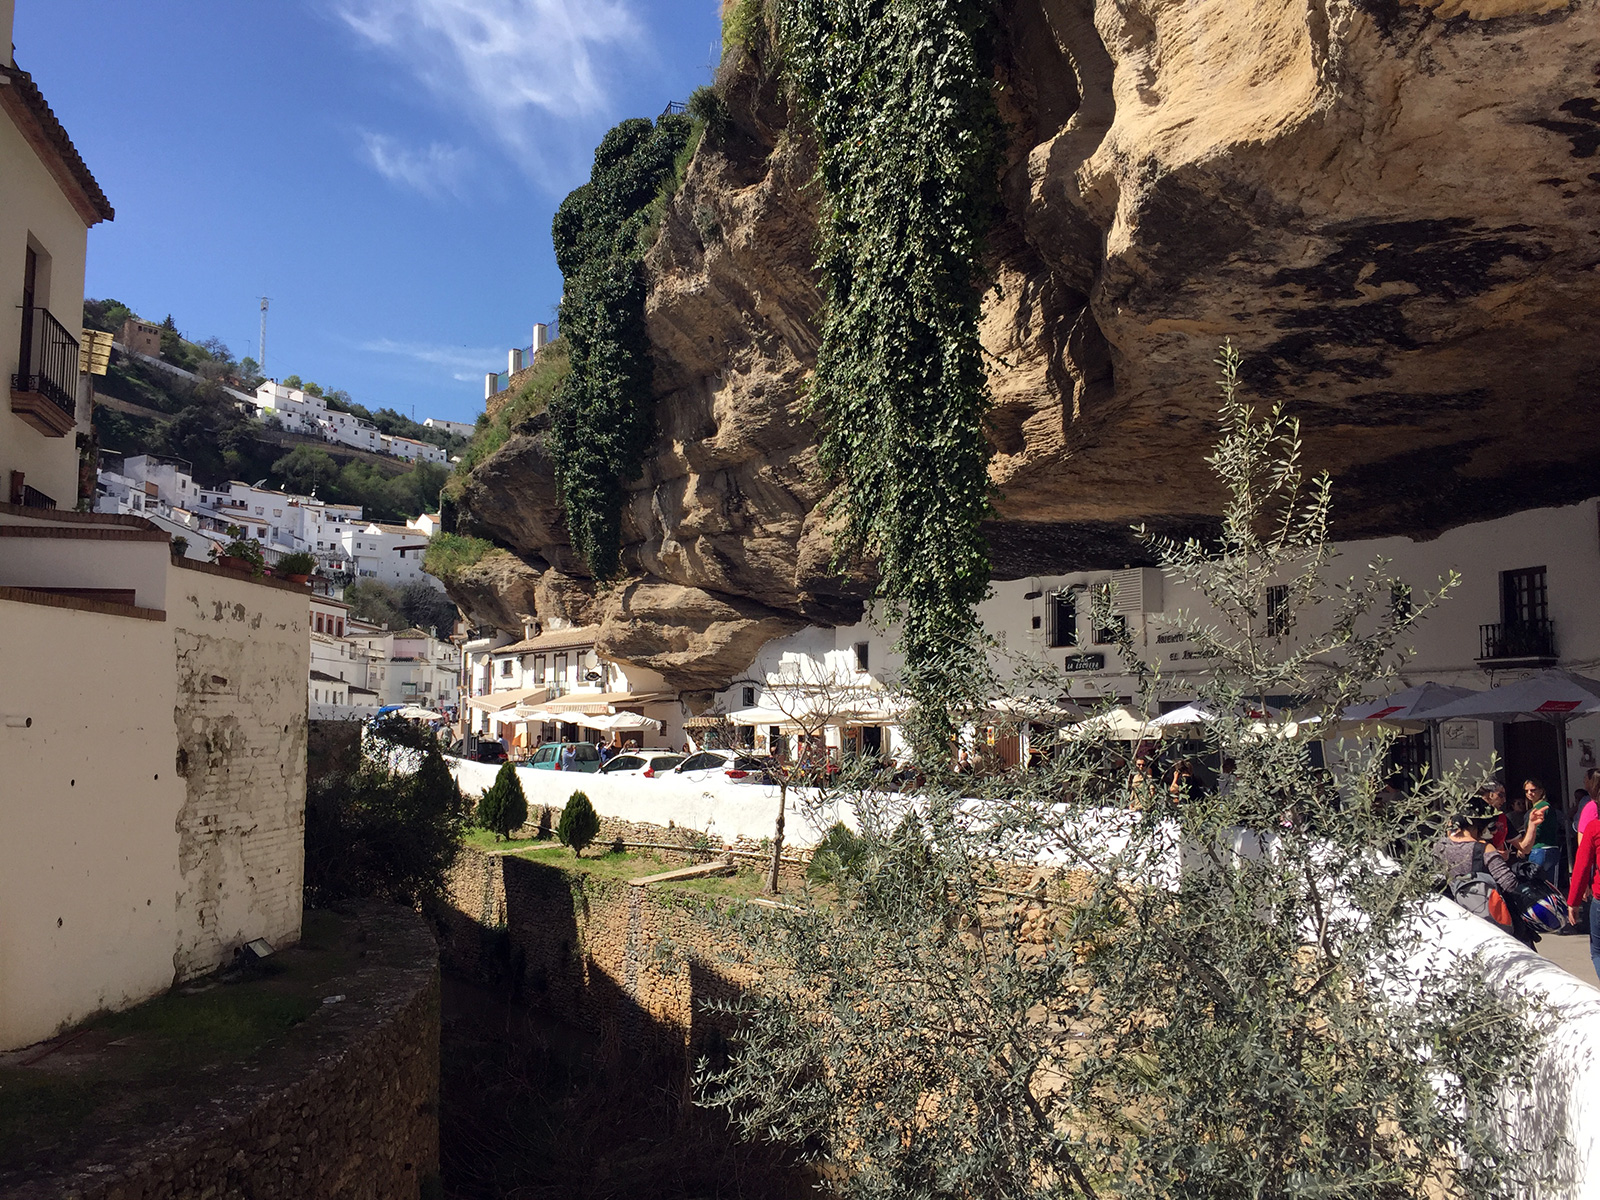 Setenil de las Bodegas, Spain by Jets Like Taxis